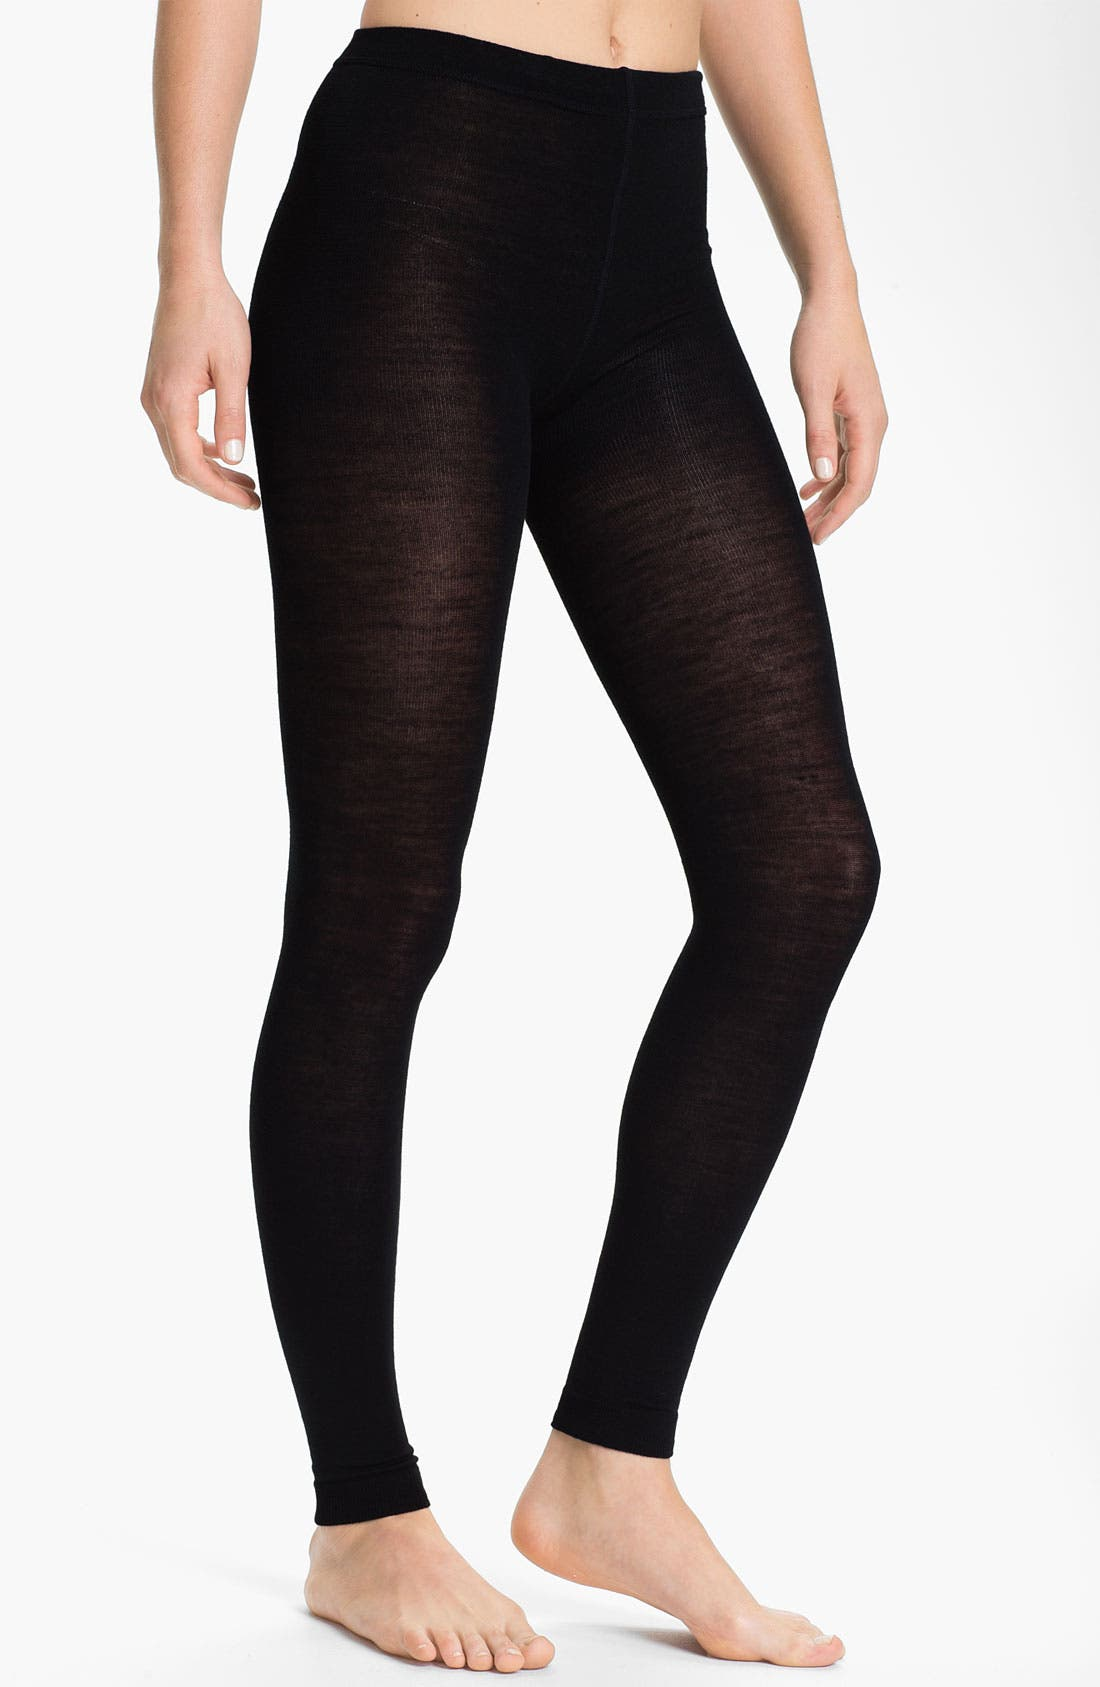 Alternate Image 1 Selected - Smartwool Footless Tights